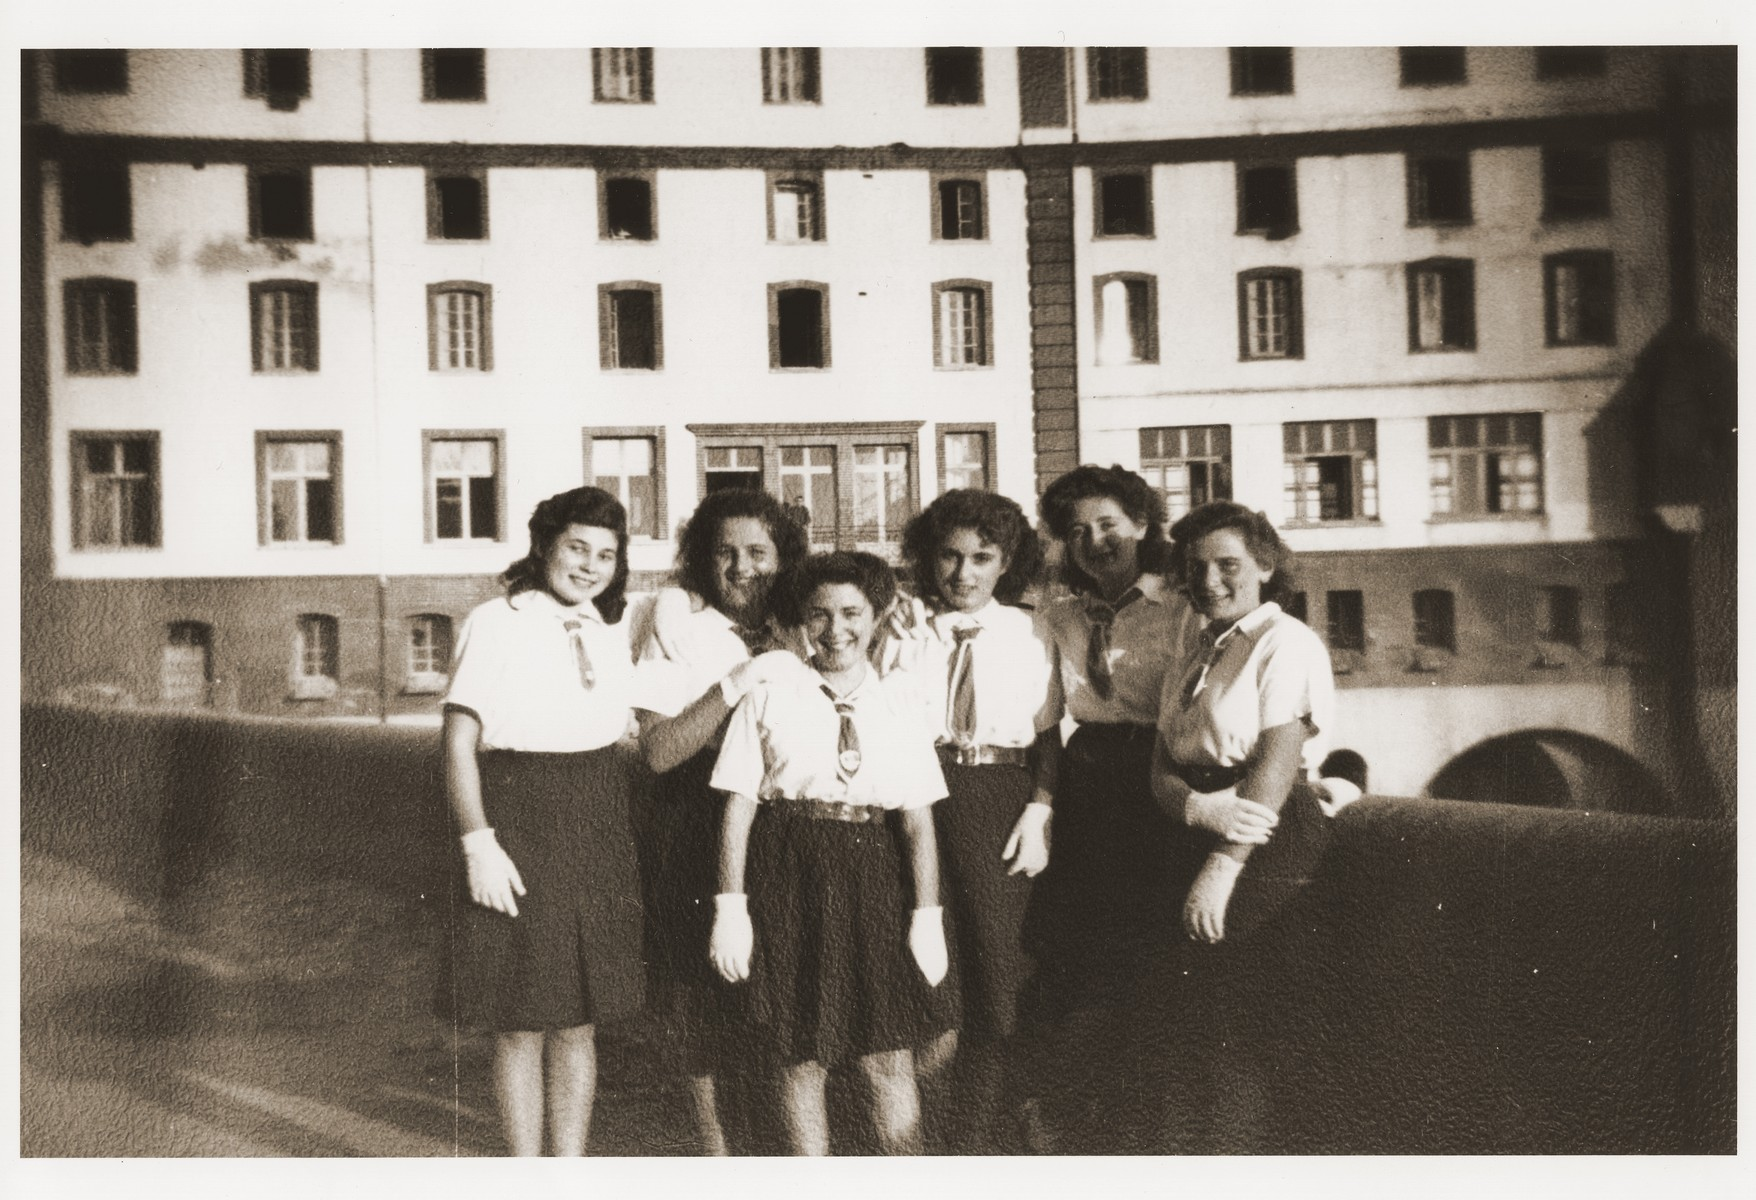 Group portrait of Jewish youth at the Hotel du Moulin in Moissac.    The Hotel du Moulin residence for displaced Jewish youth was operated by the French-Jewish scouting movement, Eclaireurs Israelites de France.